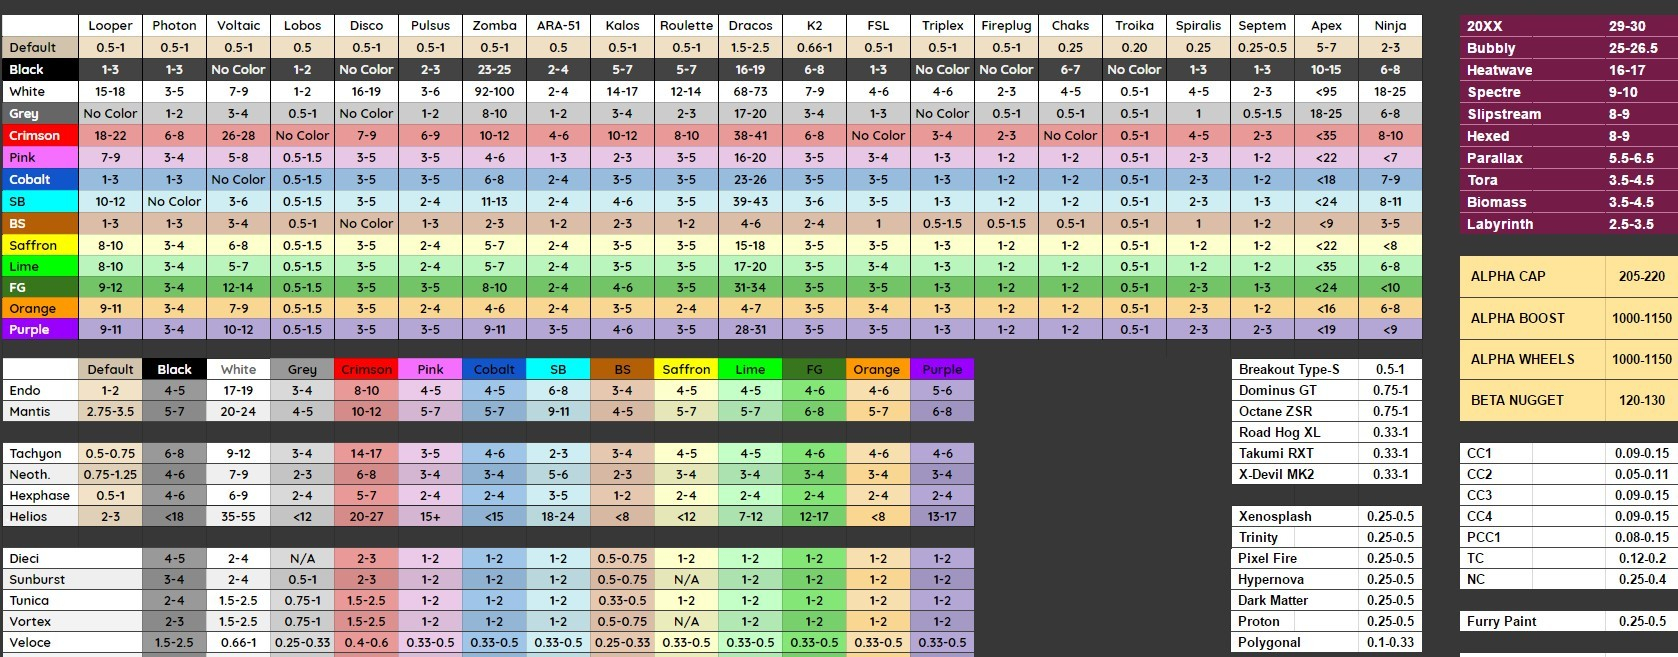 Rl Spreadsheet Xbox One Pertaining To Rocket League Trading Spreadsheet Unique Steam Munity Guide Rl Pc